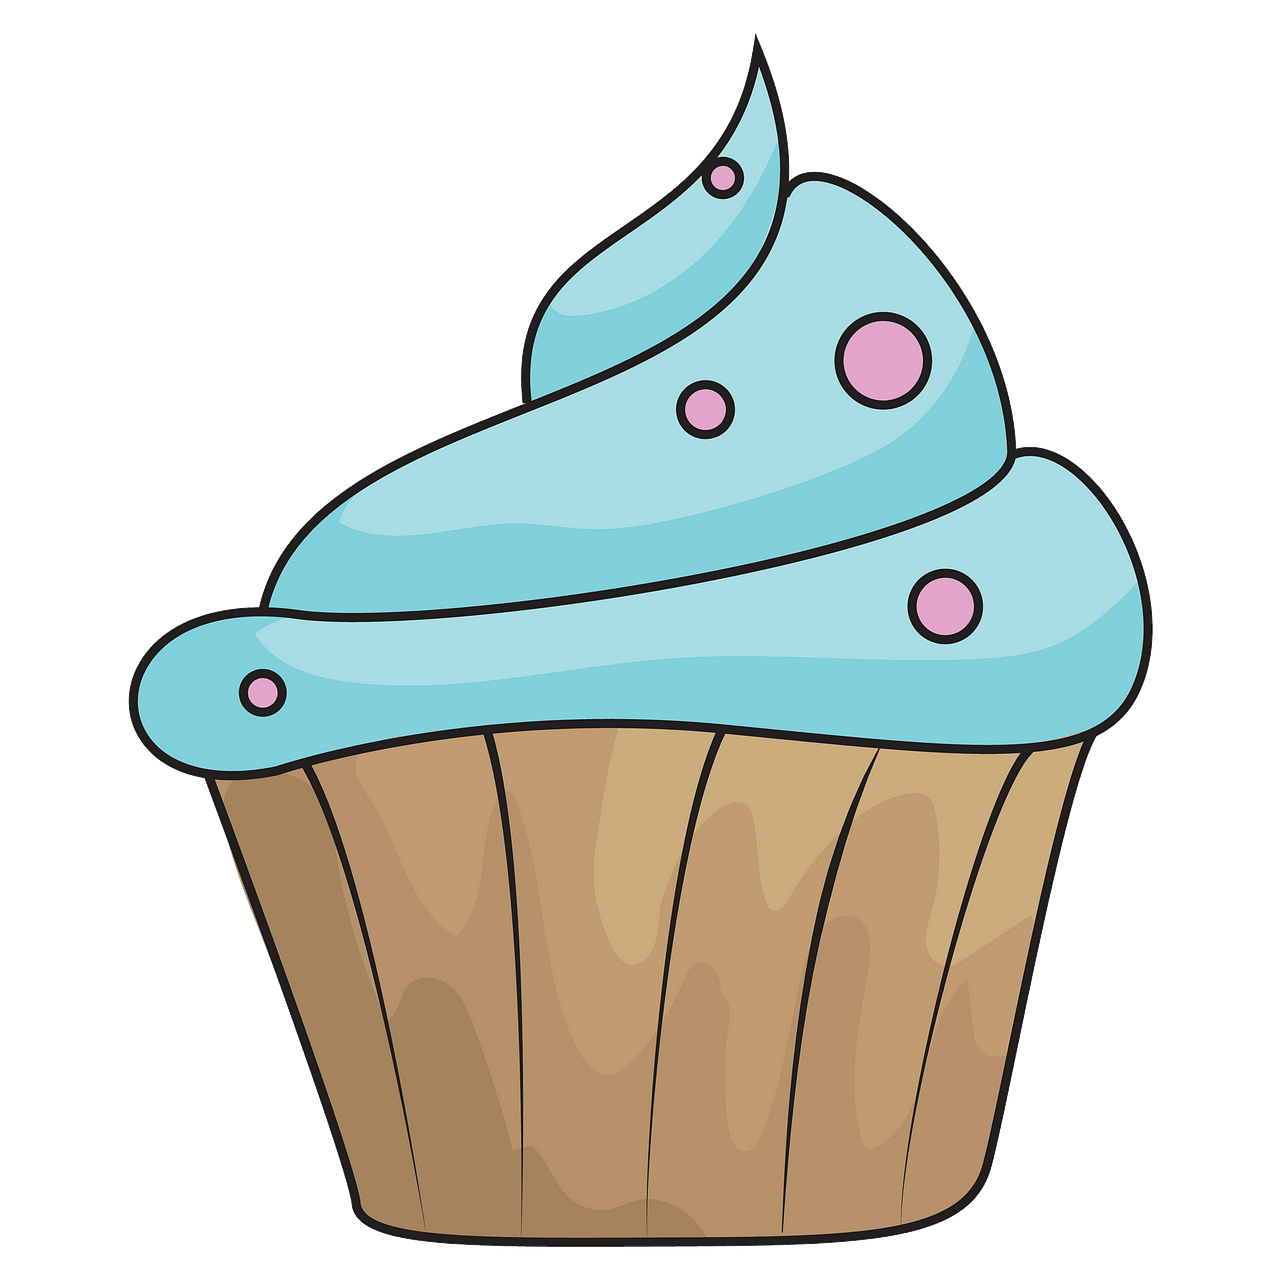 Blue cupcake clipart. Free download..